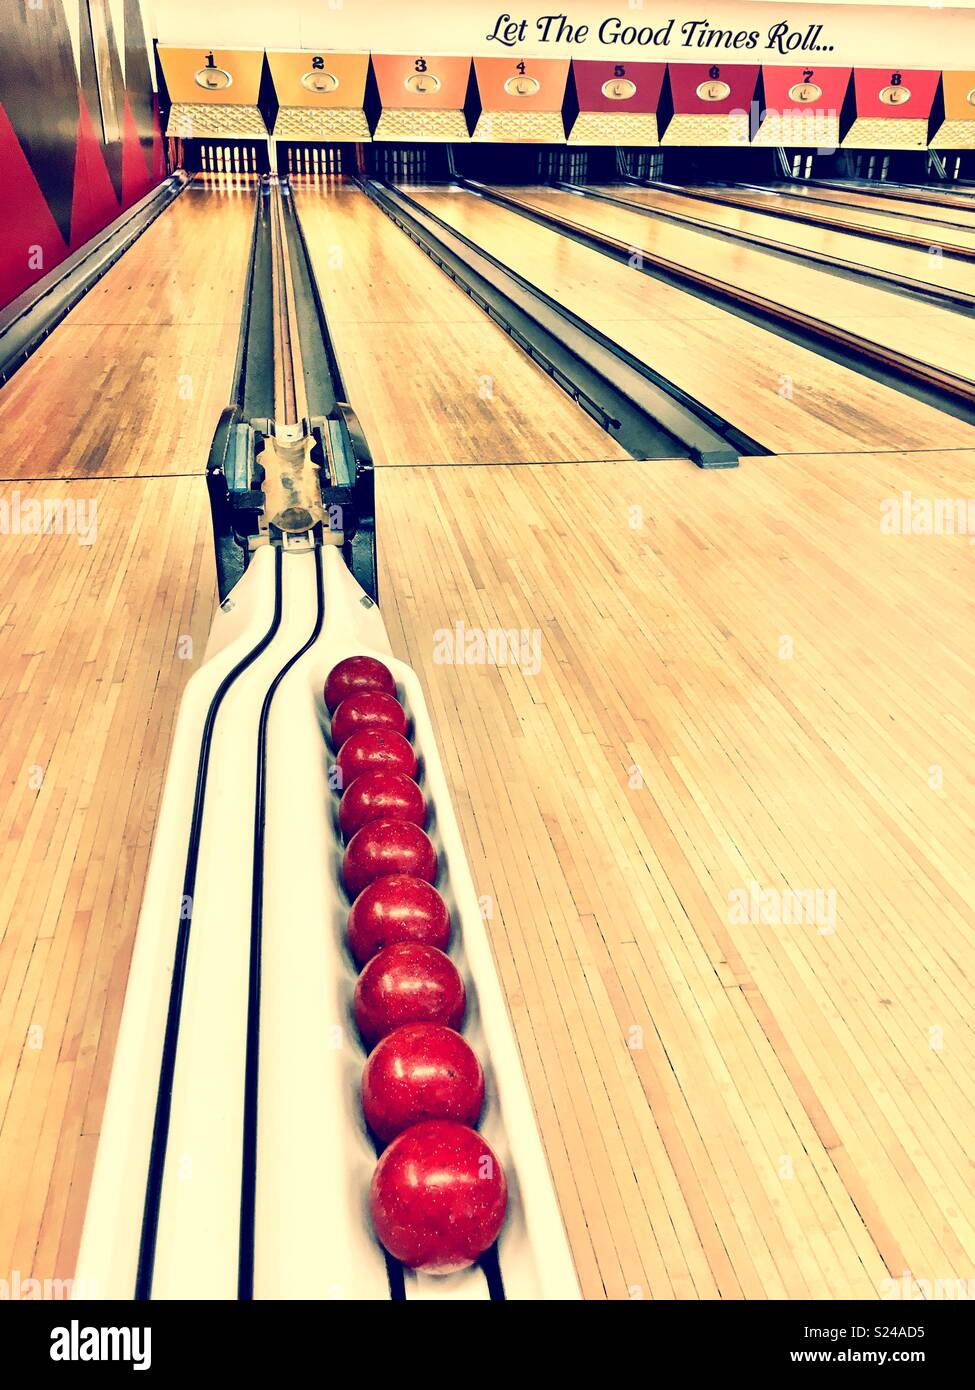 Candlepin bowling alley Stock Photo: 311111953 - Alamy